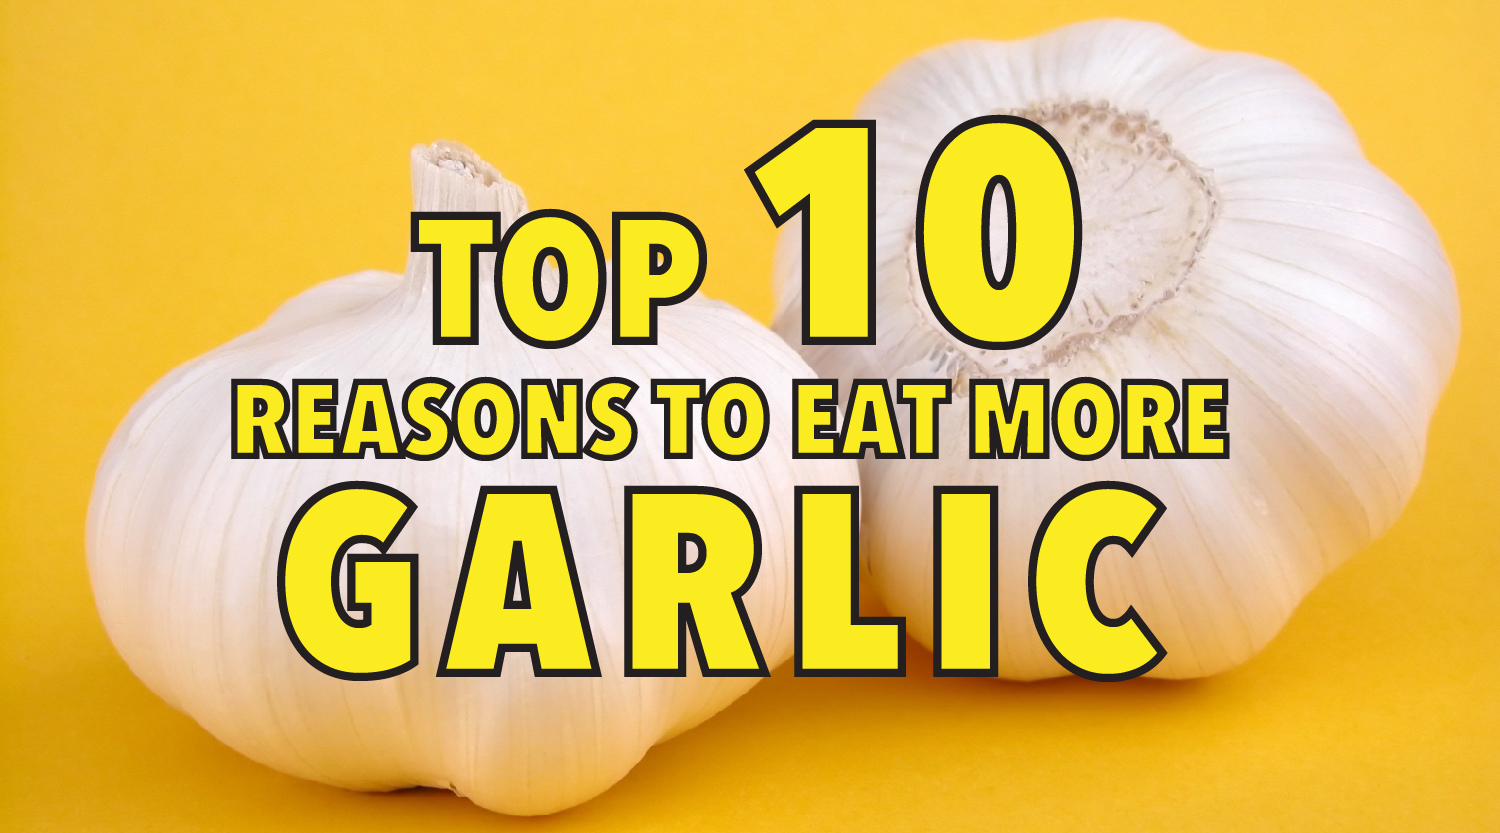 Top 10 reasons to eat more garlic